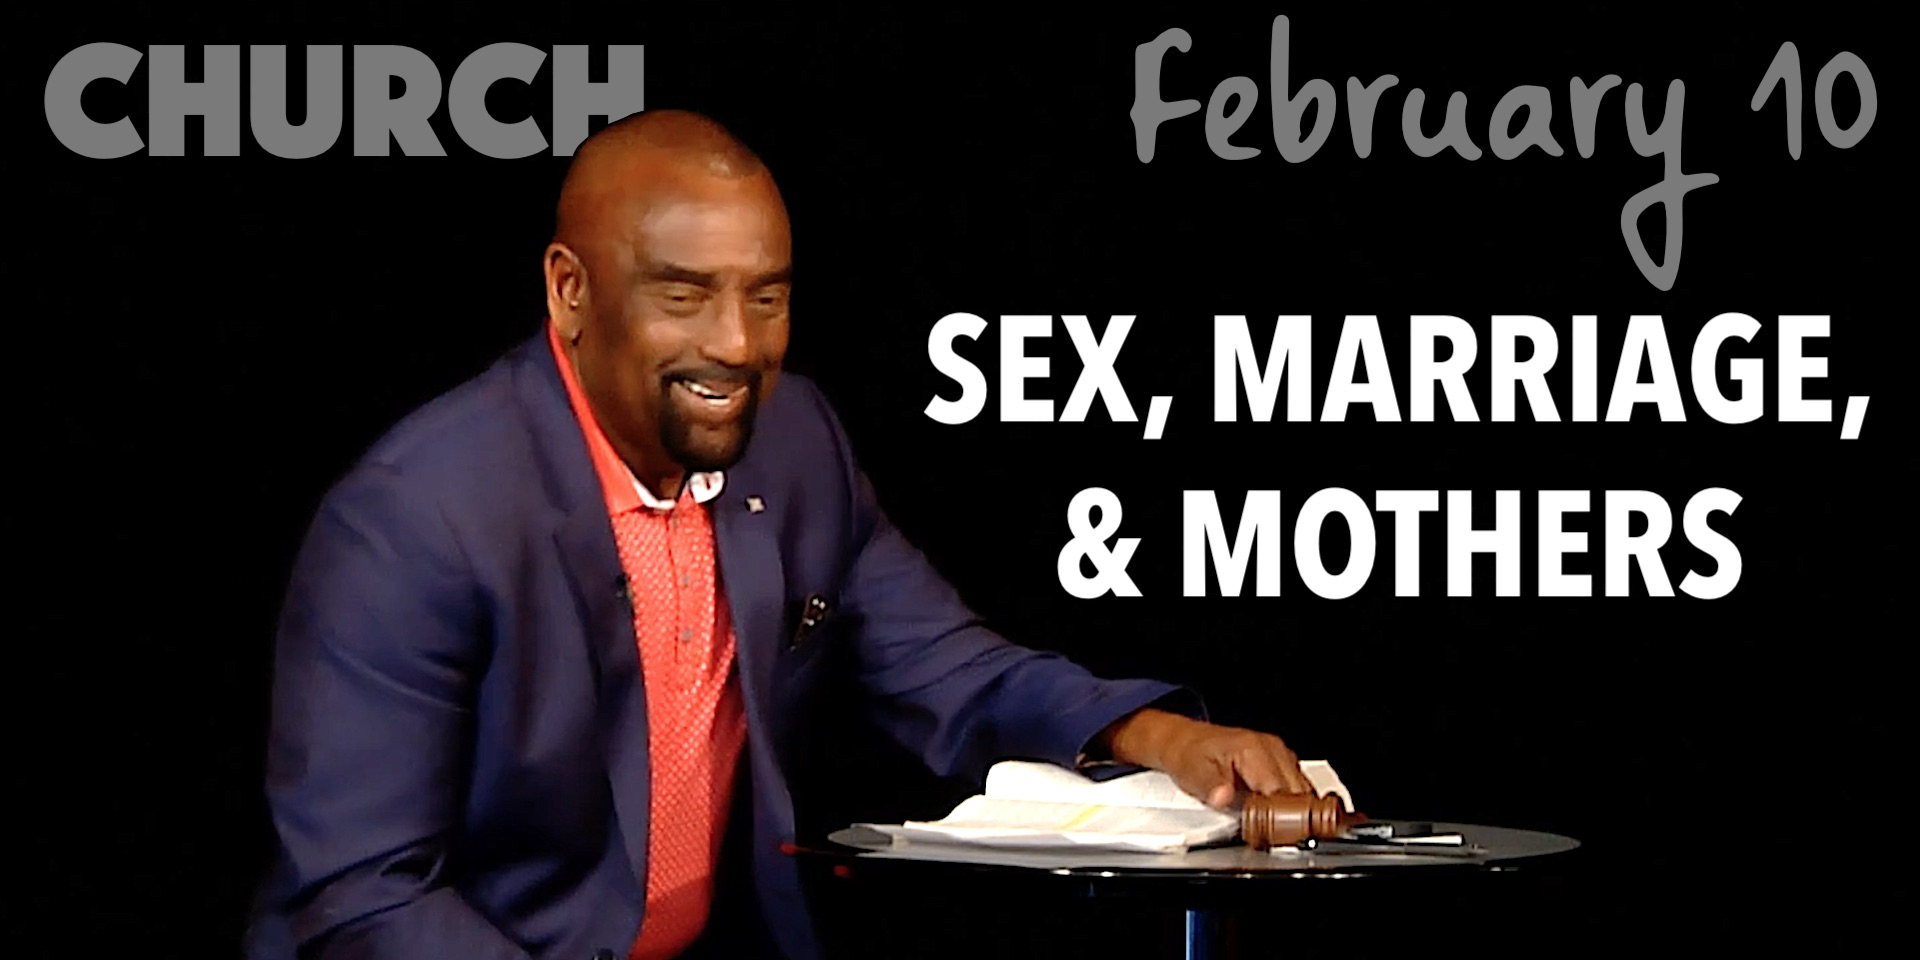 Church Feb 10, 2019: Sex, Marriage, and Mothers